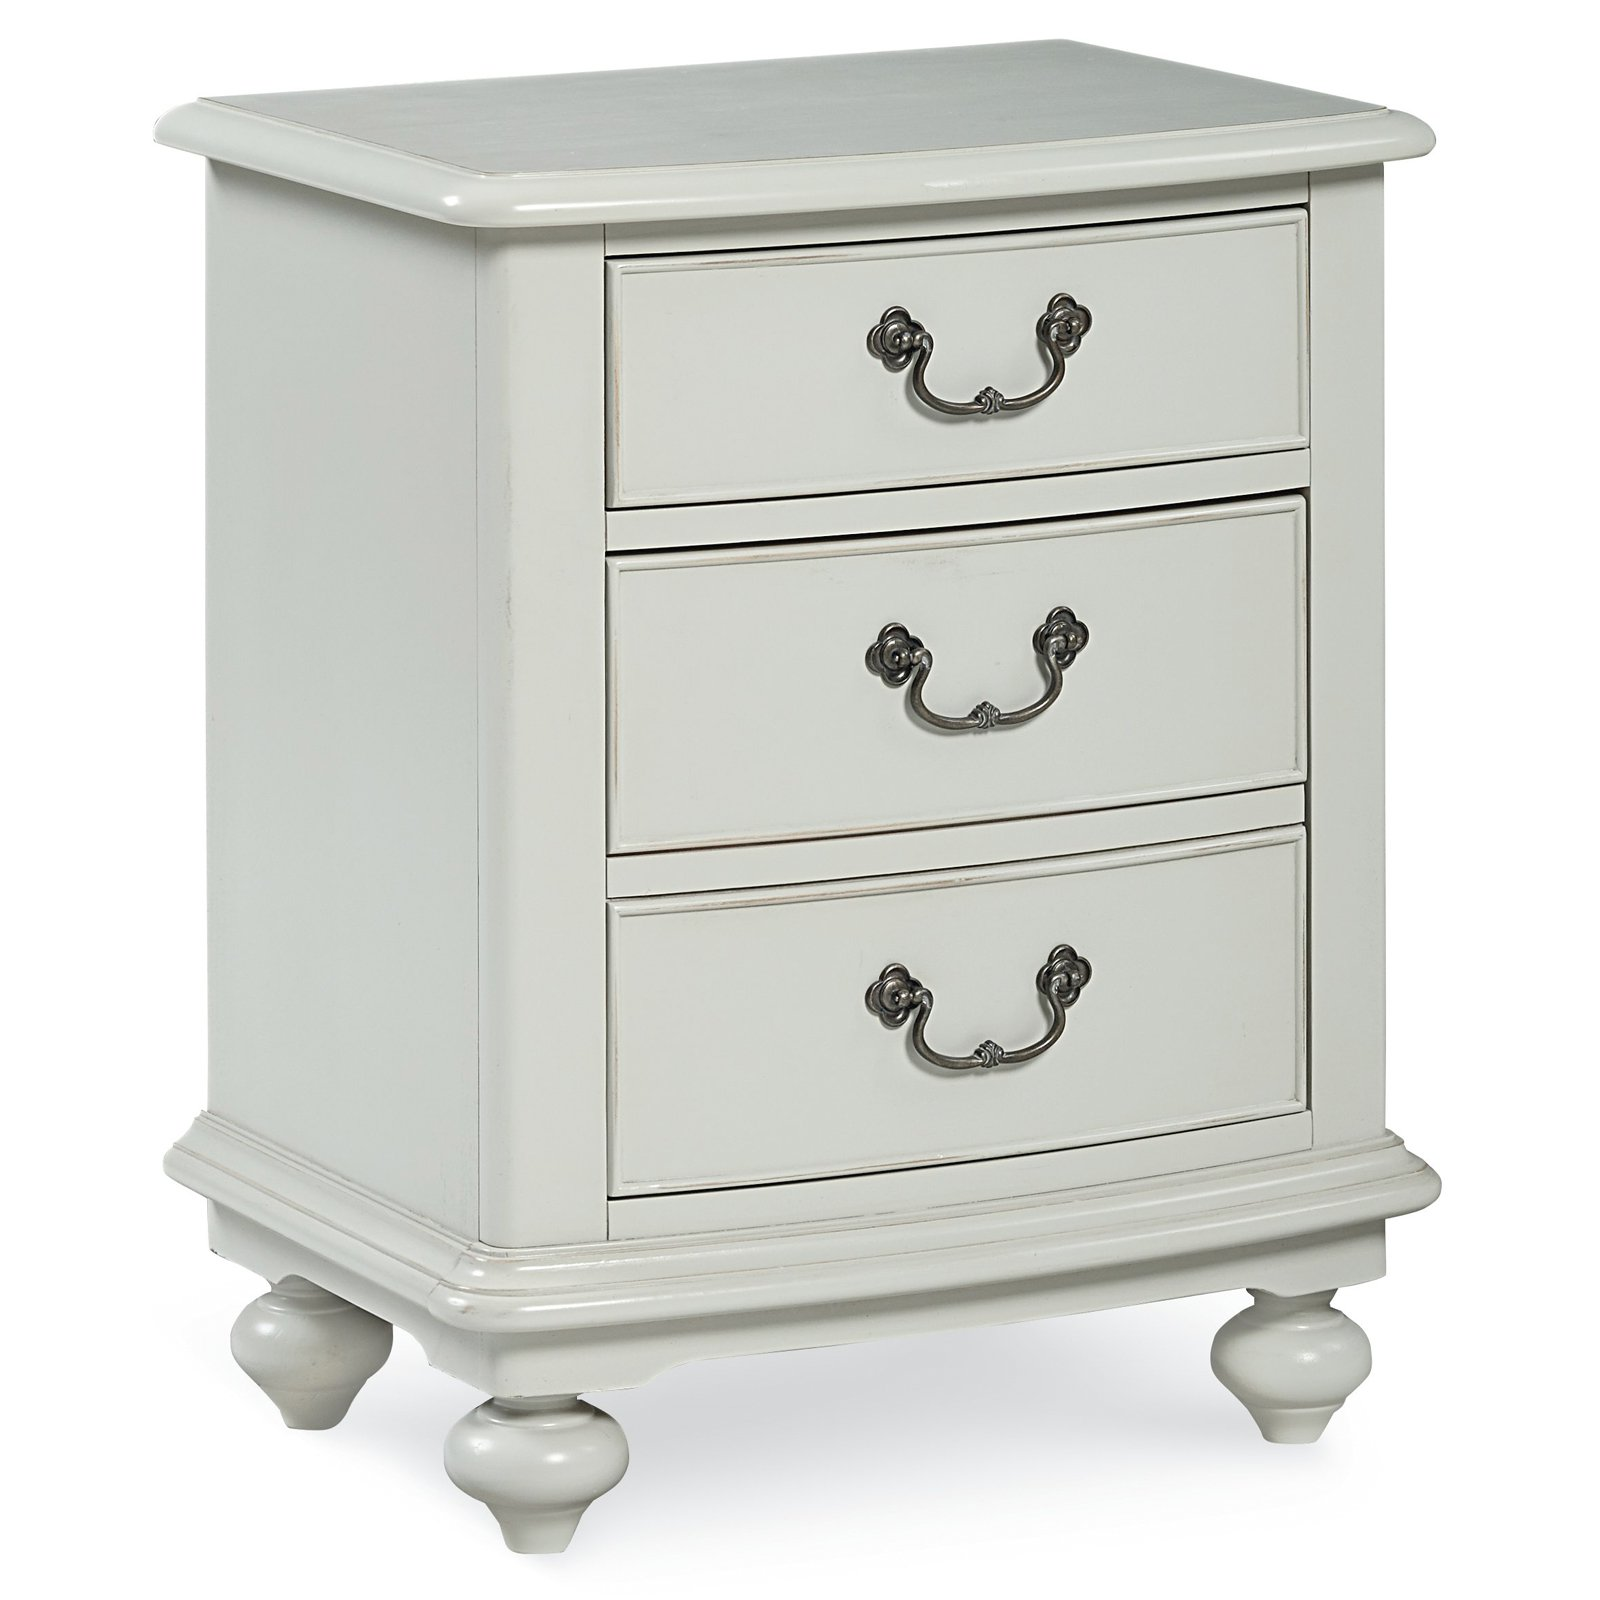 Wendy Bellissimo by LC Kids Inspirations 3 Drawer Nightstand